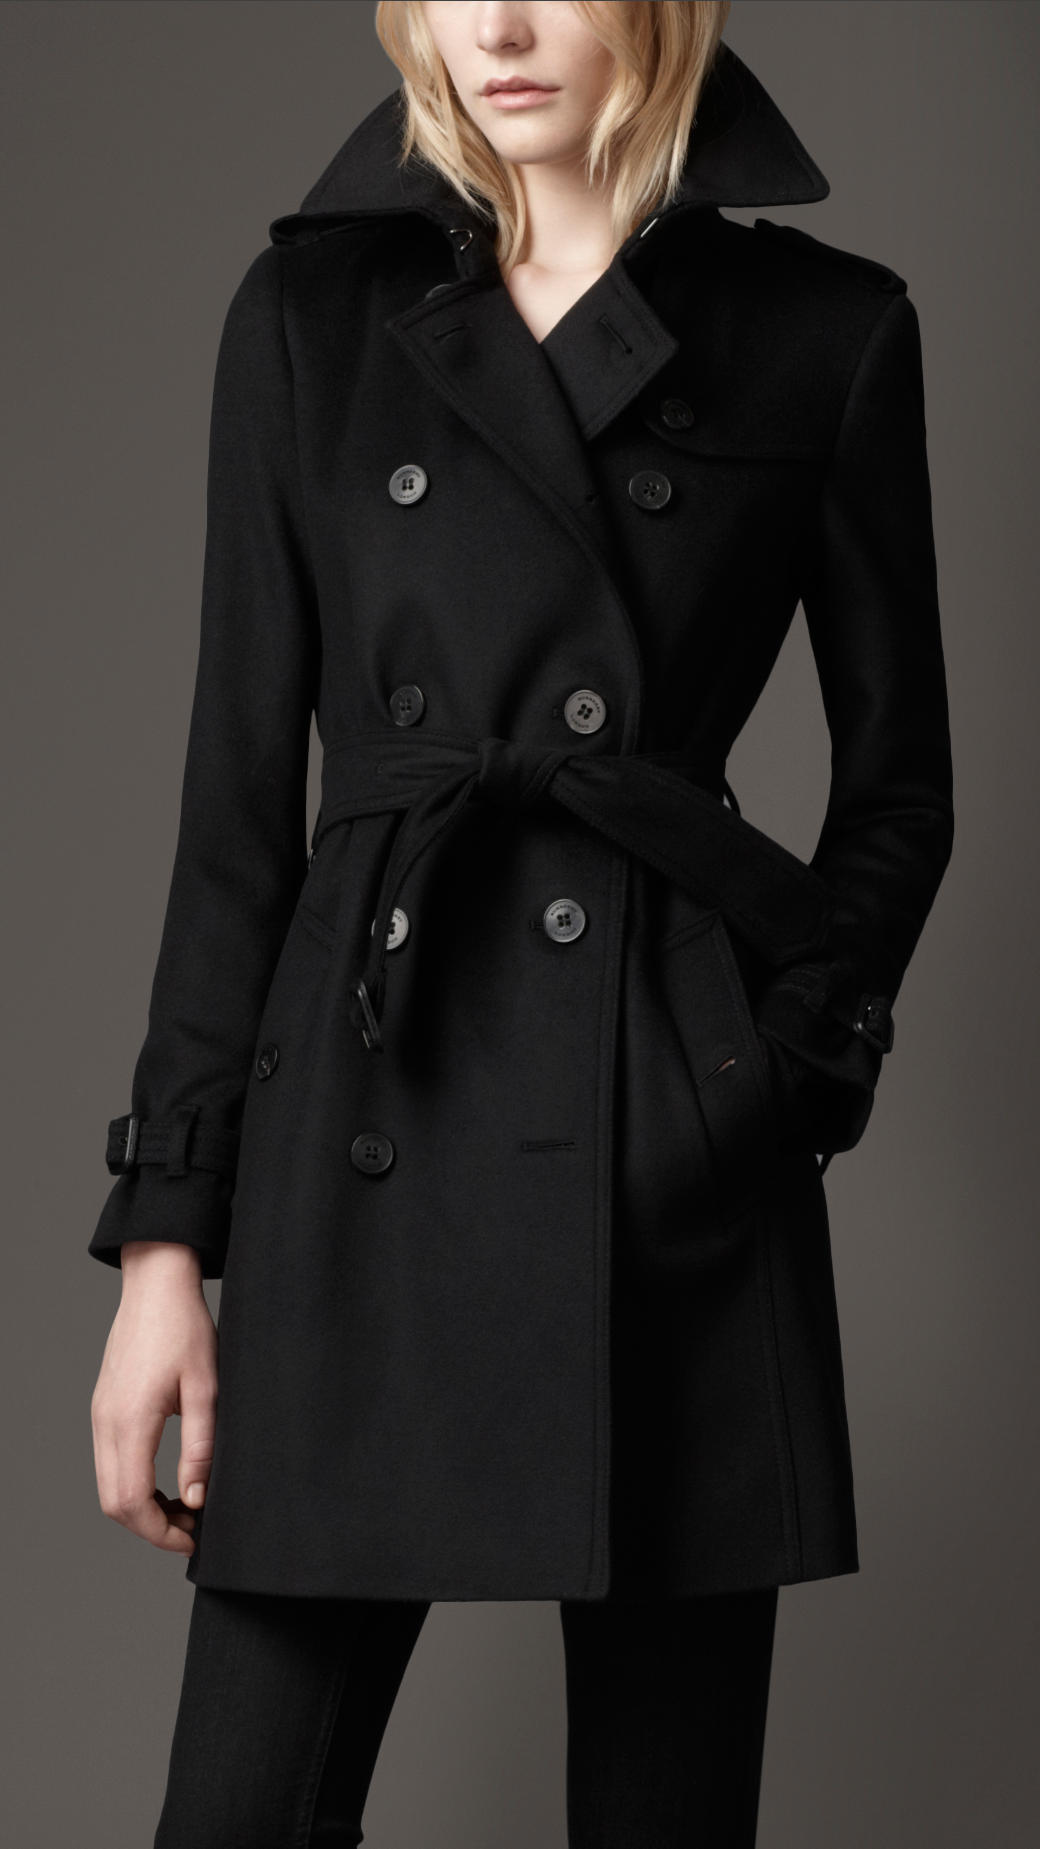 Burberry Midlength Wool Cashmere Trench Coat in Black | Lyst